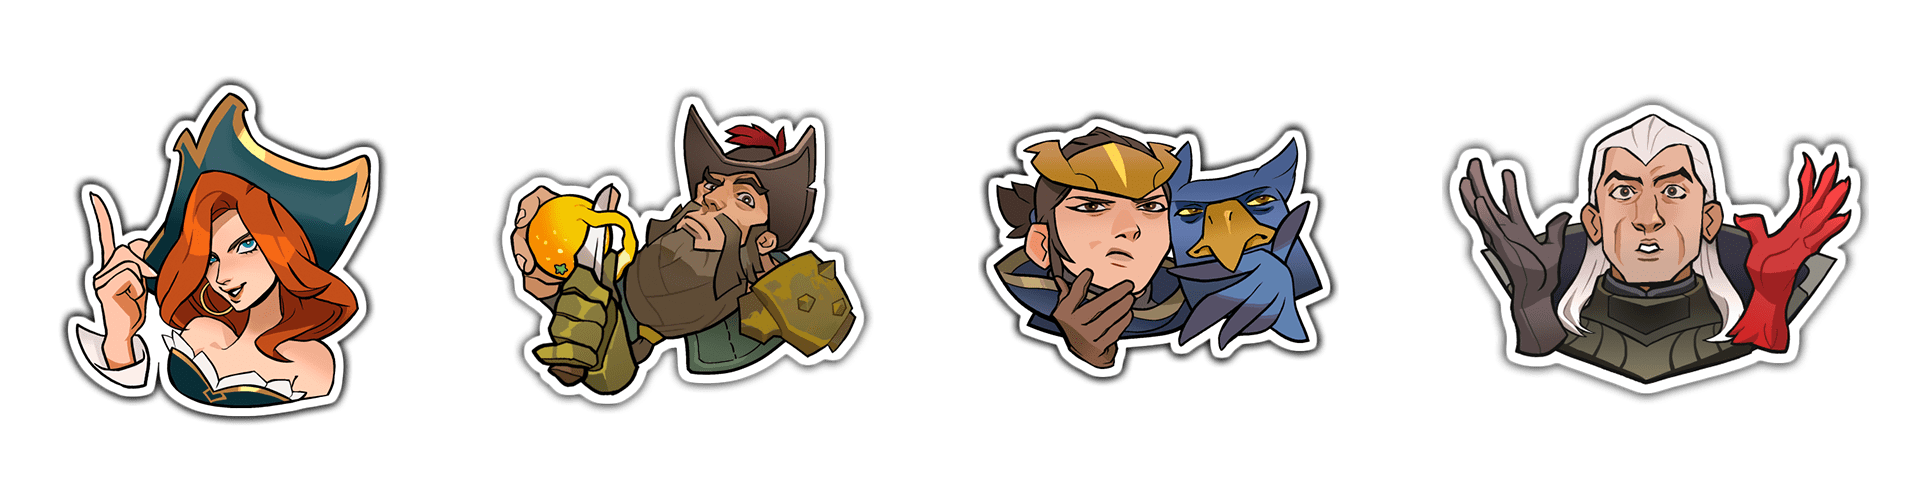 Patch_1_0_emotes.png